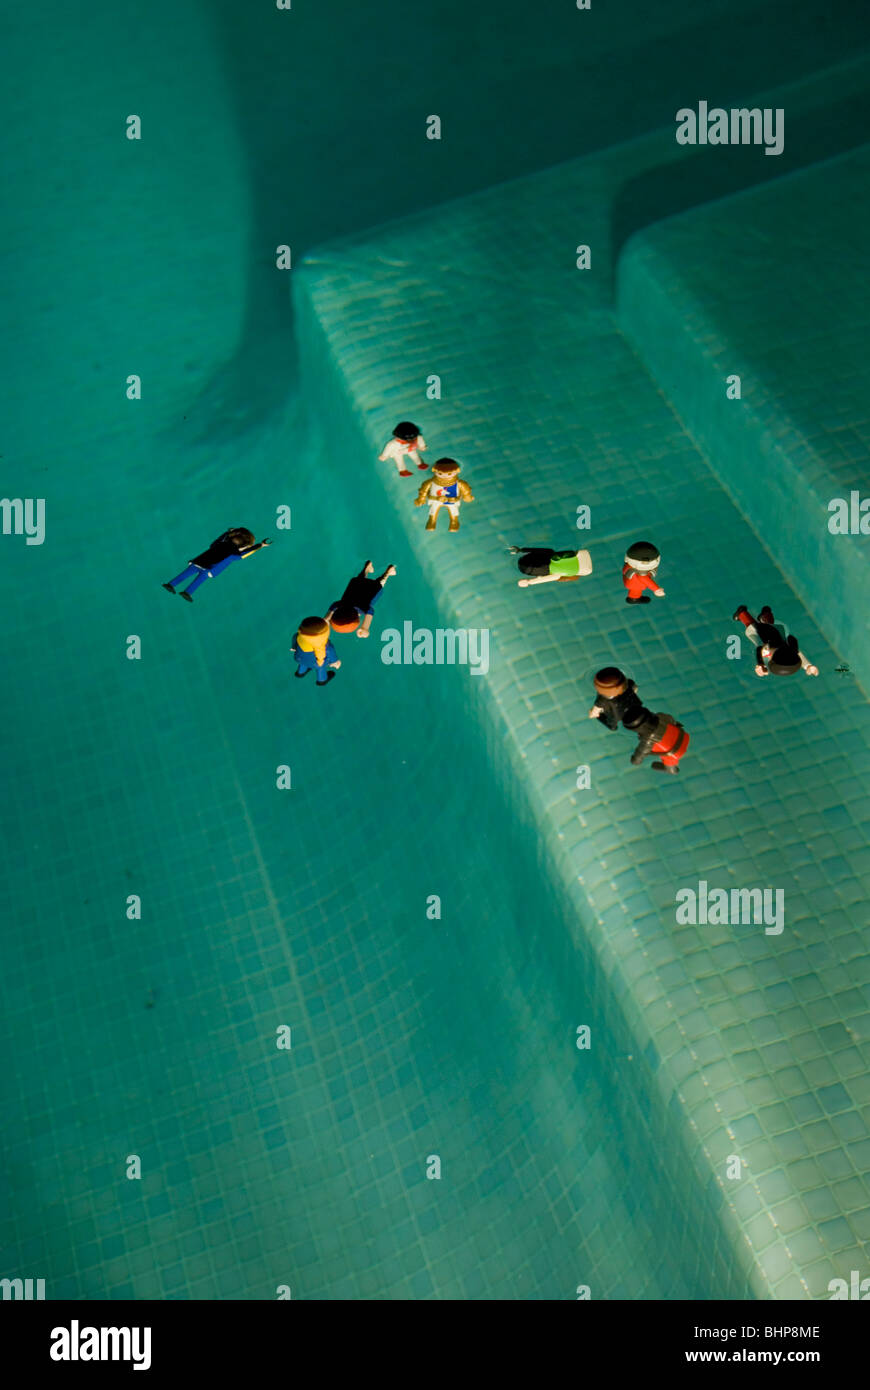 looking down at toy figures lit up floating in swimming pool at night - Stock Image